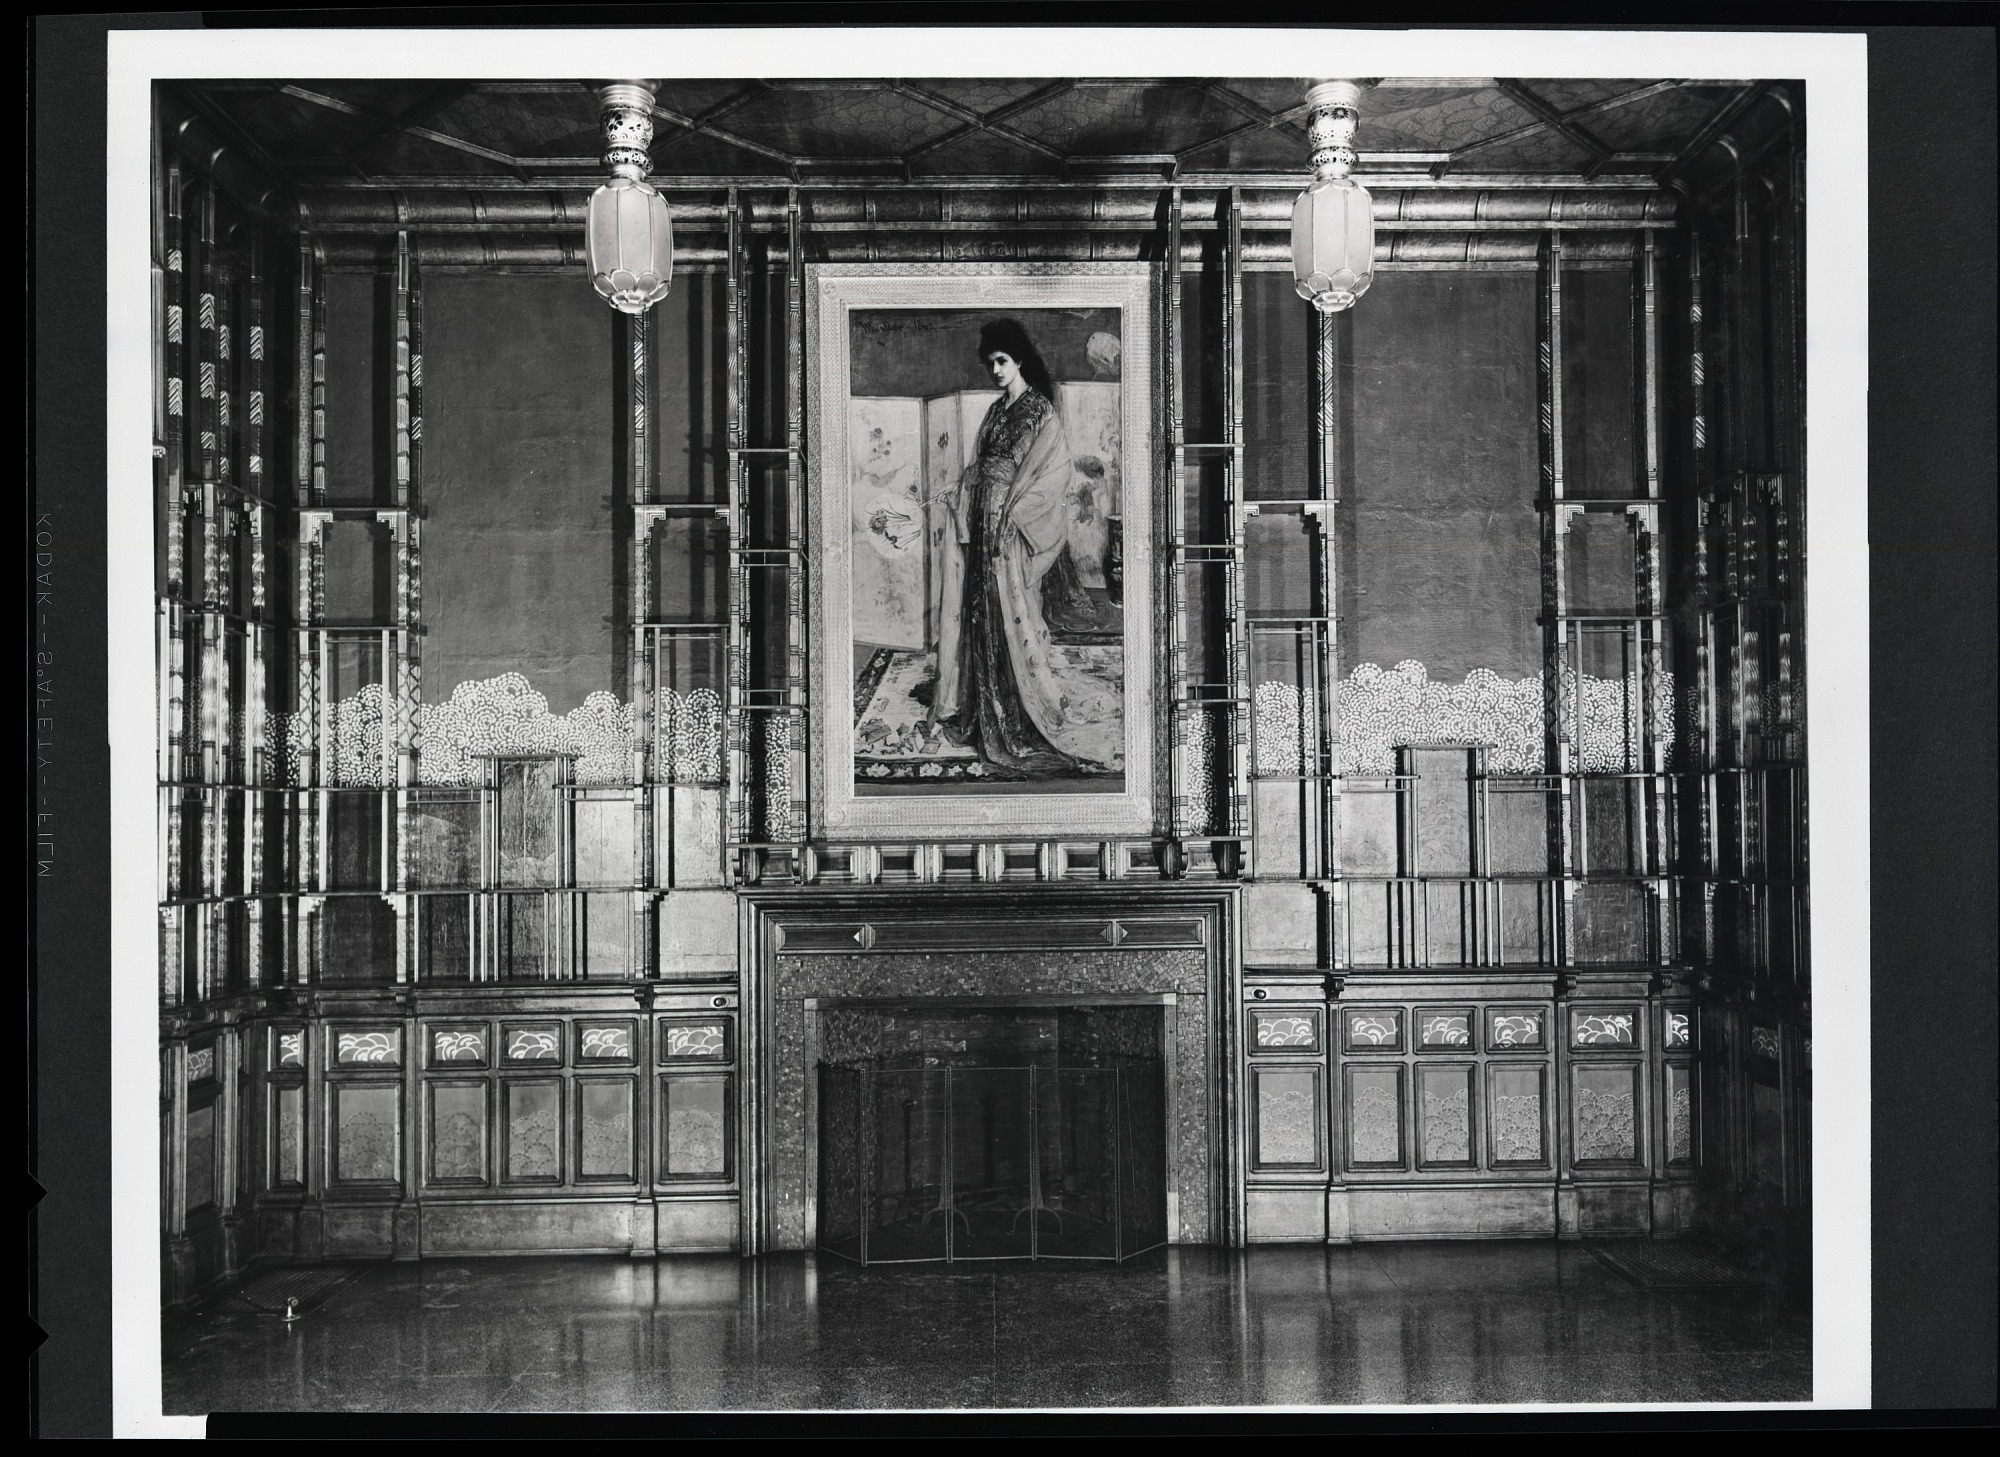 North Wall of the Peacock Room in the Freer Gallery of Art